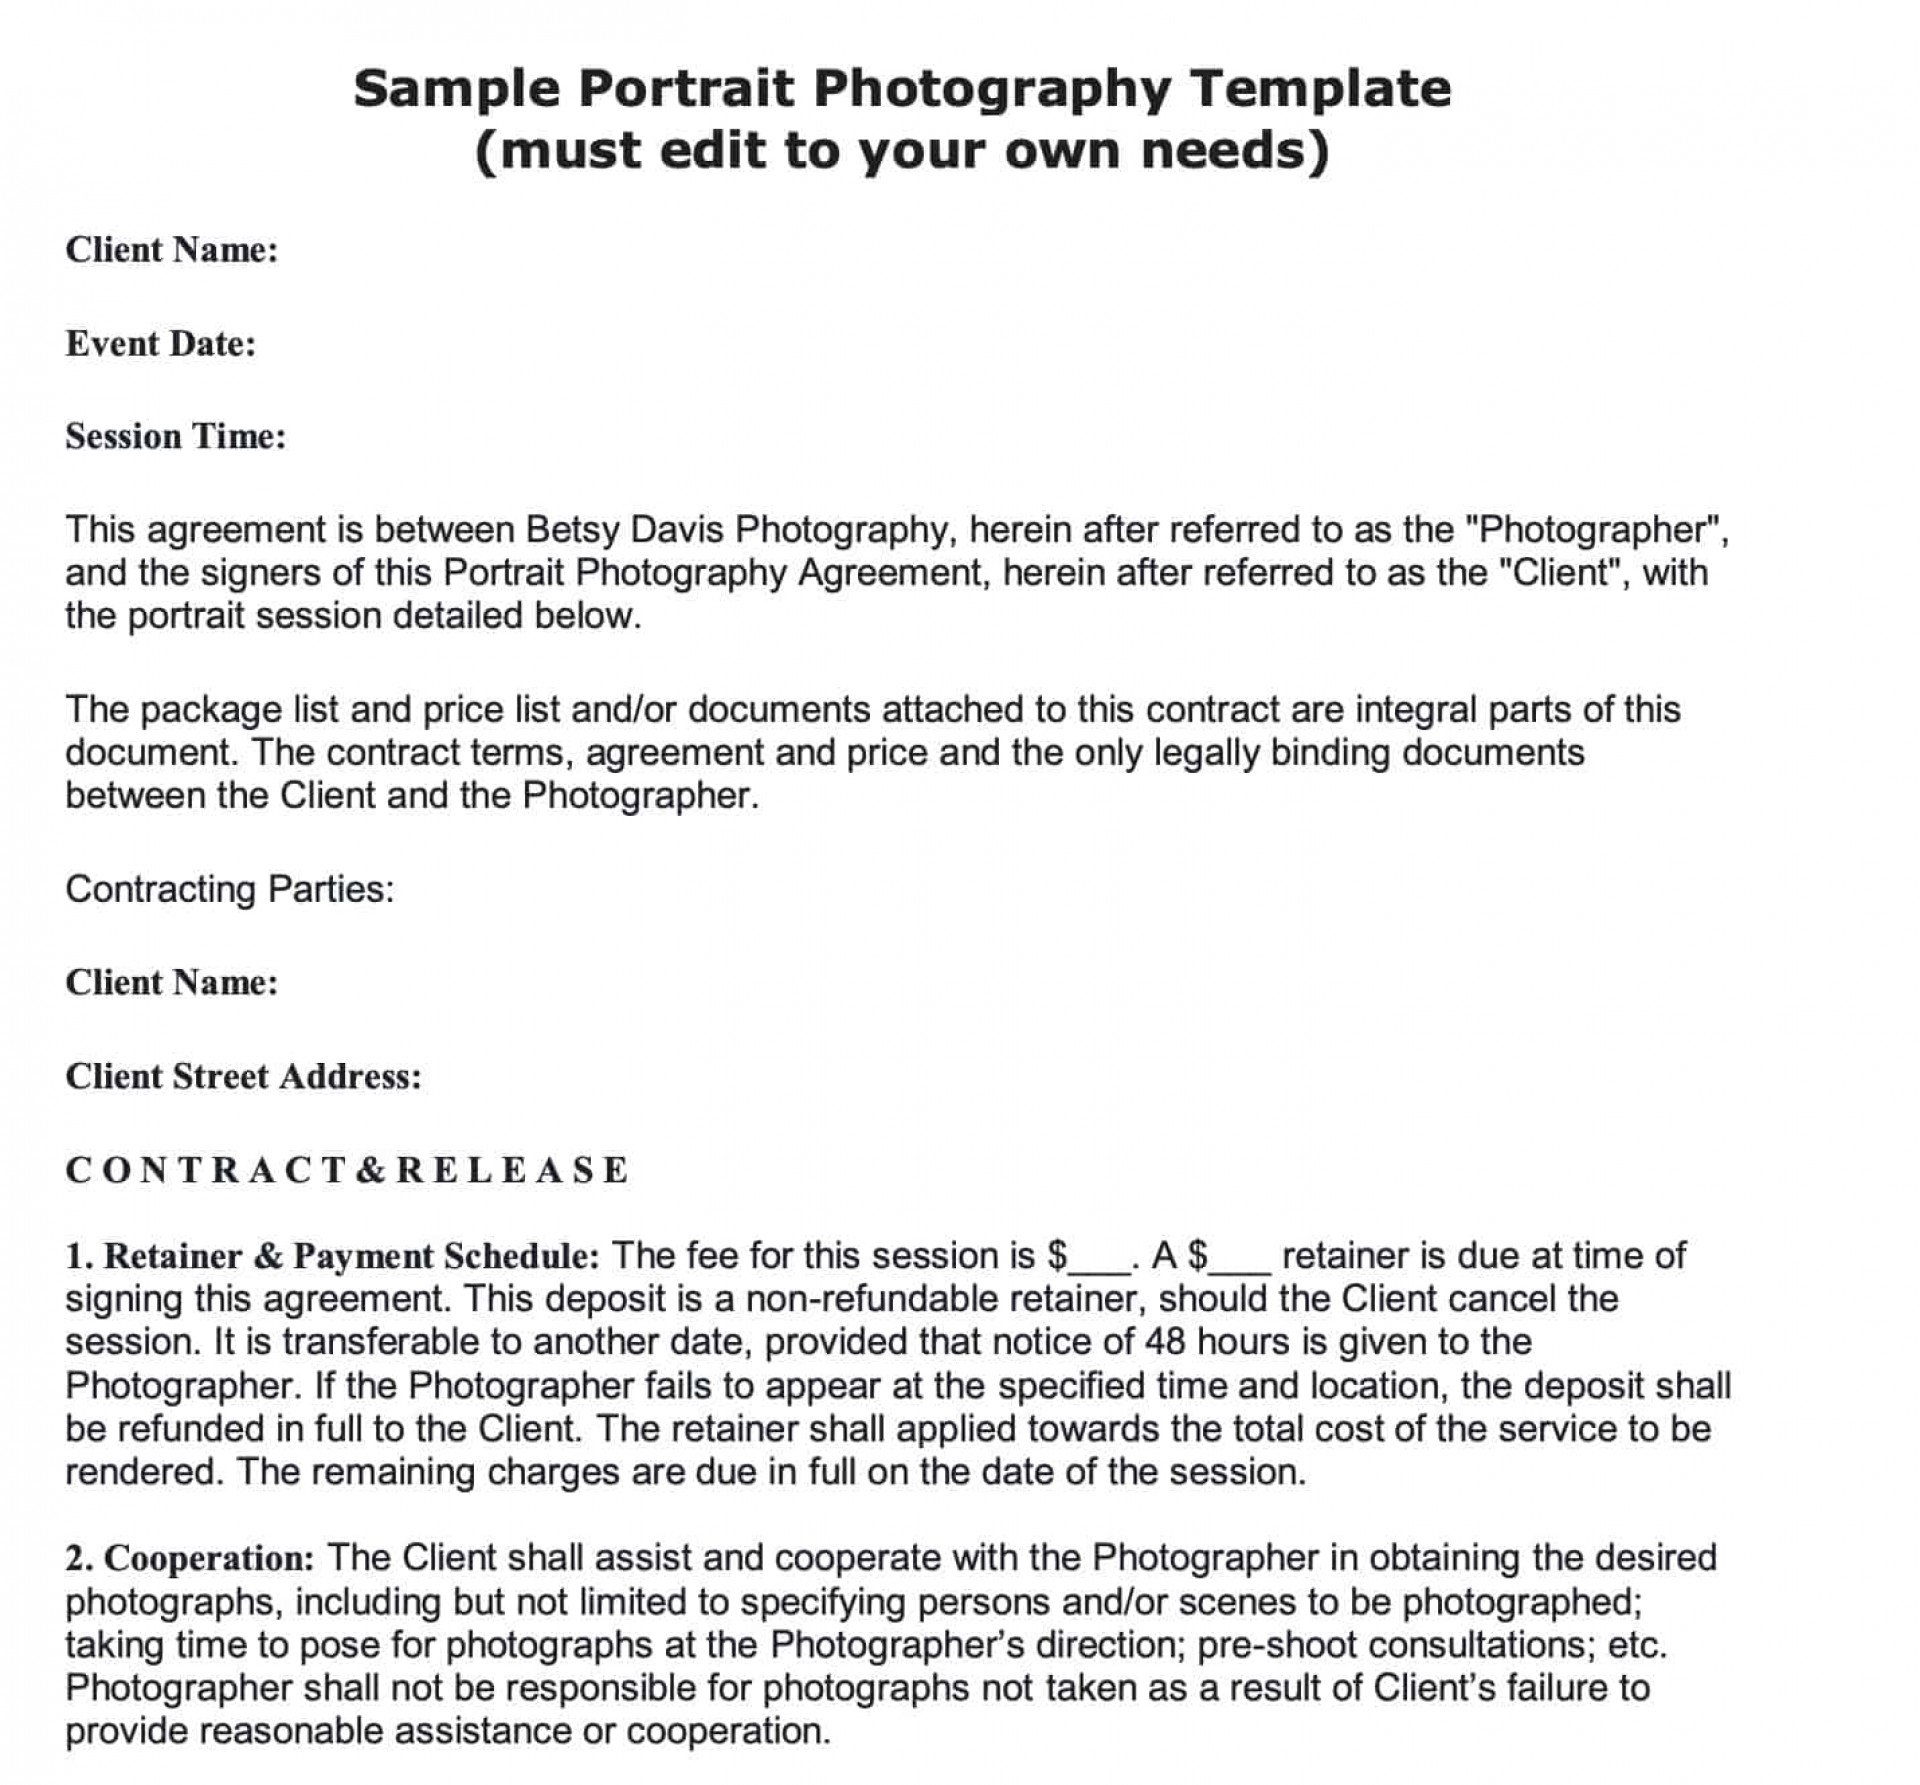 008 Stunning Portrait Photography Contract Template Highest Quality  Pdf Australia1920